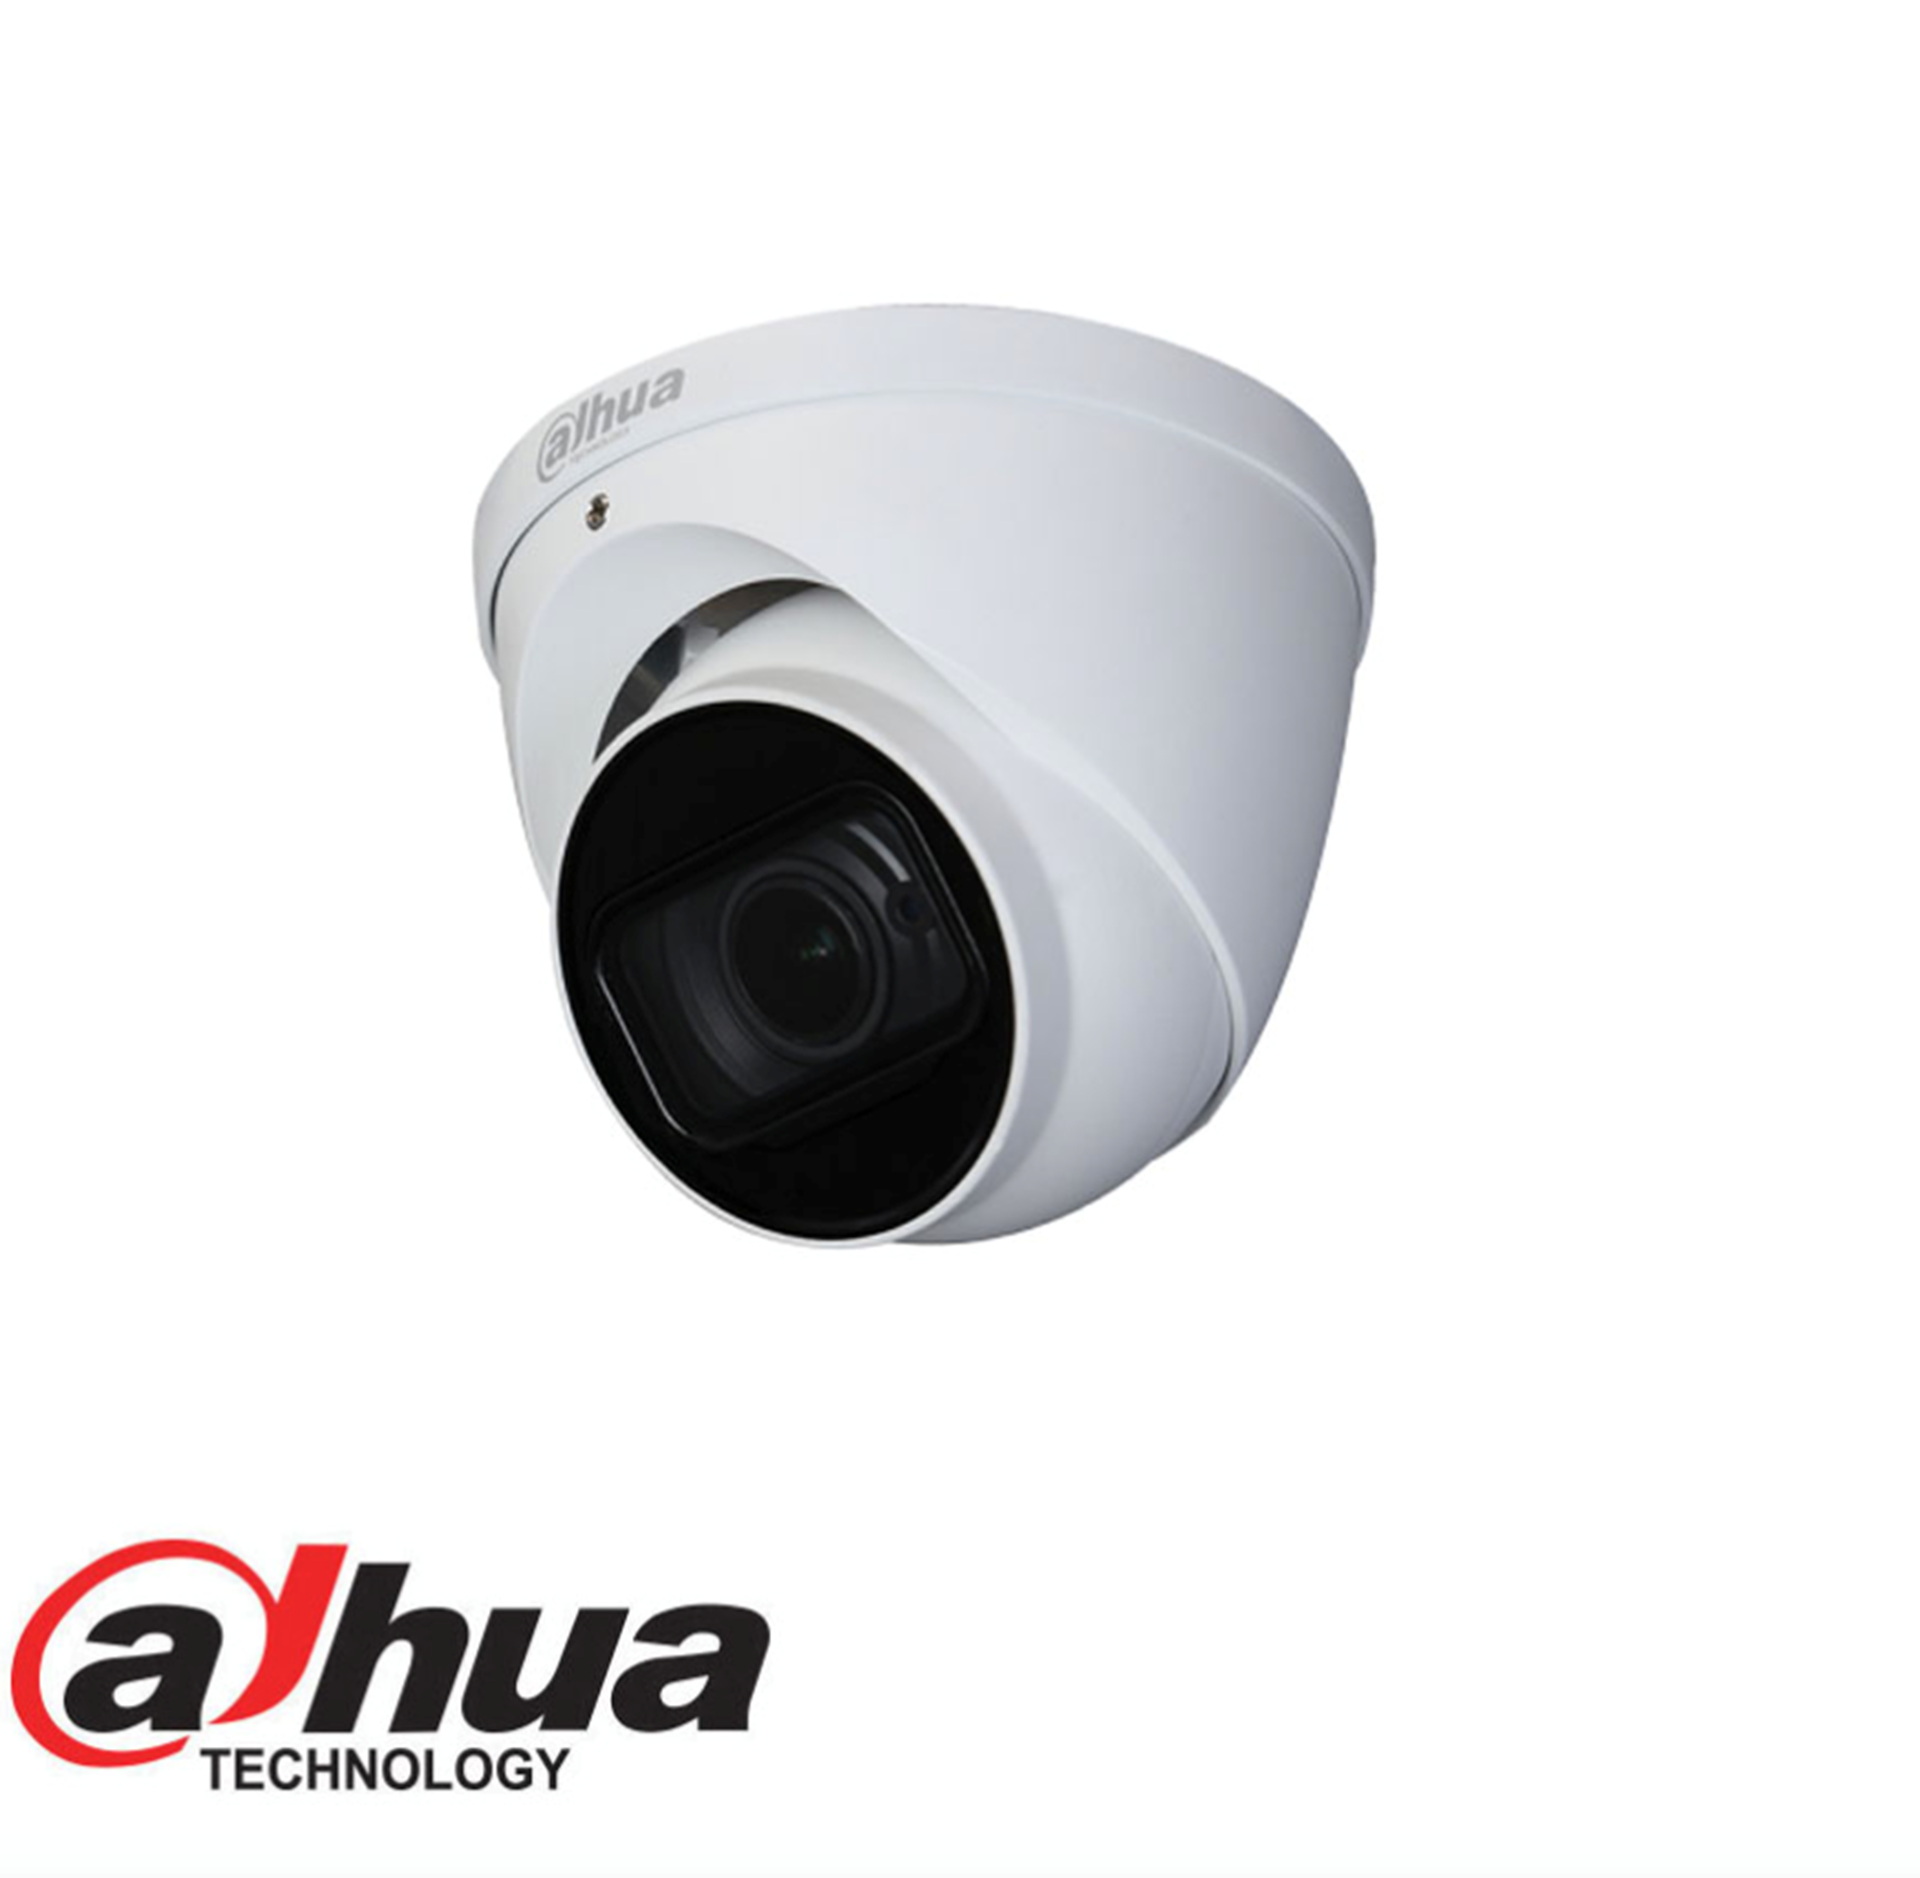 DAHUA IPC-HDW3441EMP-AS-360 IP 4MP AI STARLIGHT POE EYEBALL DOME - 3.6MM FIXED LENS